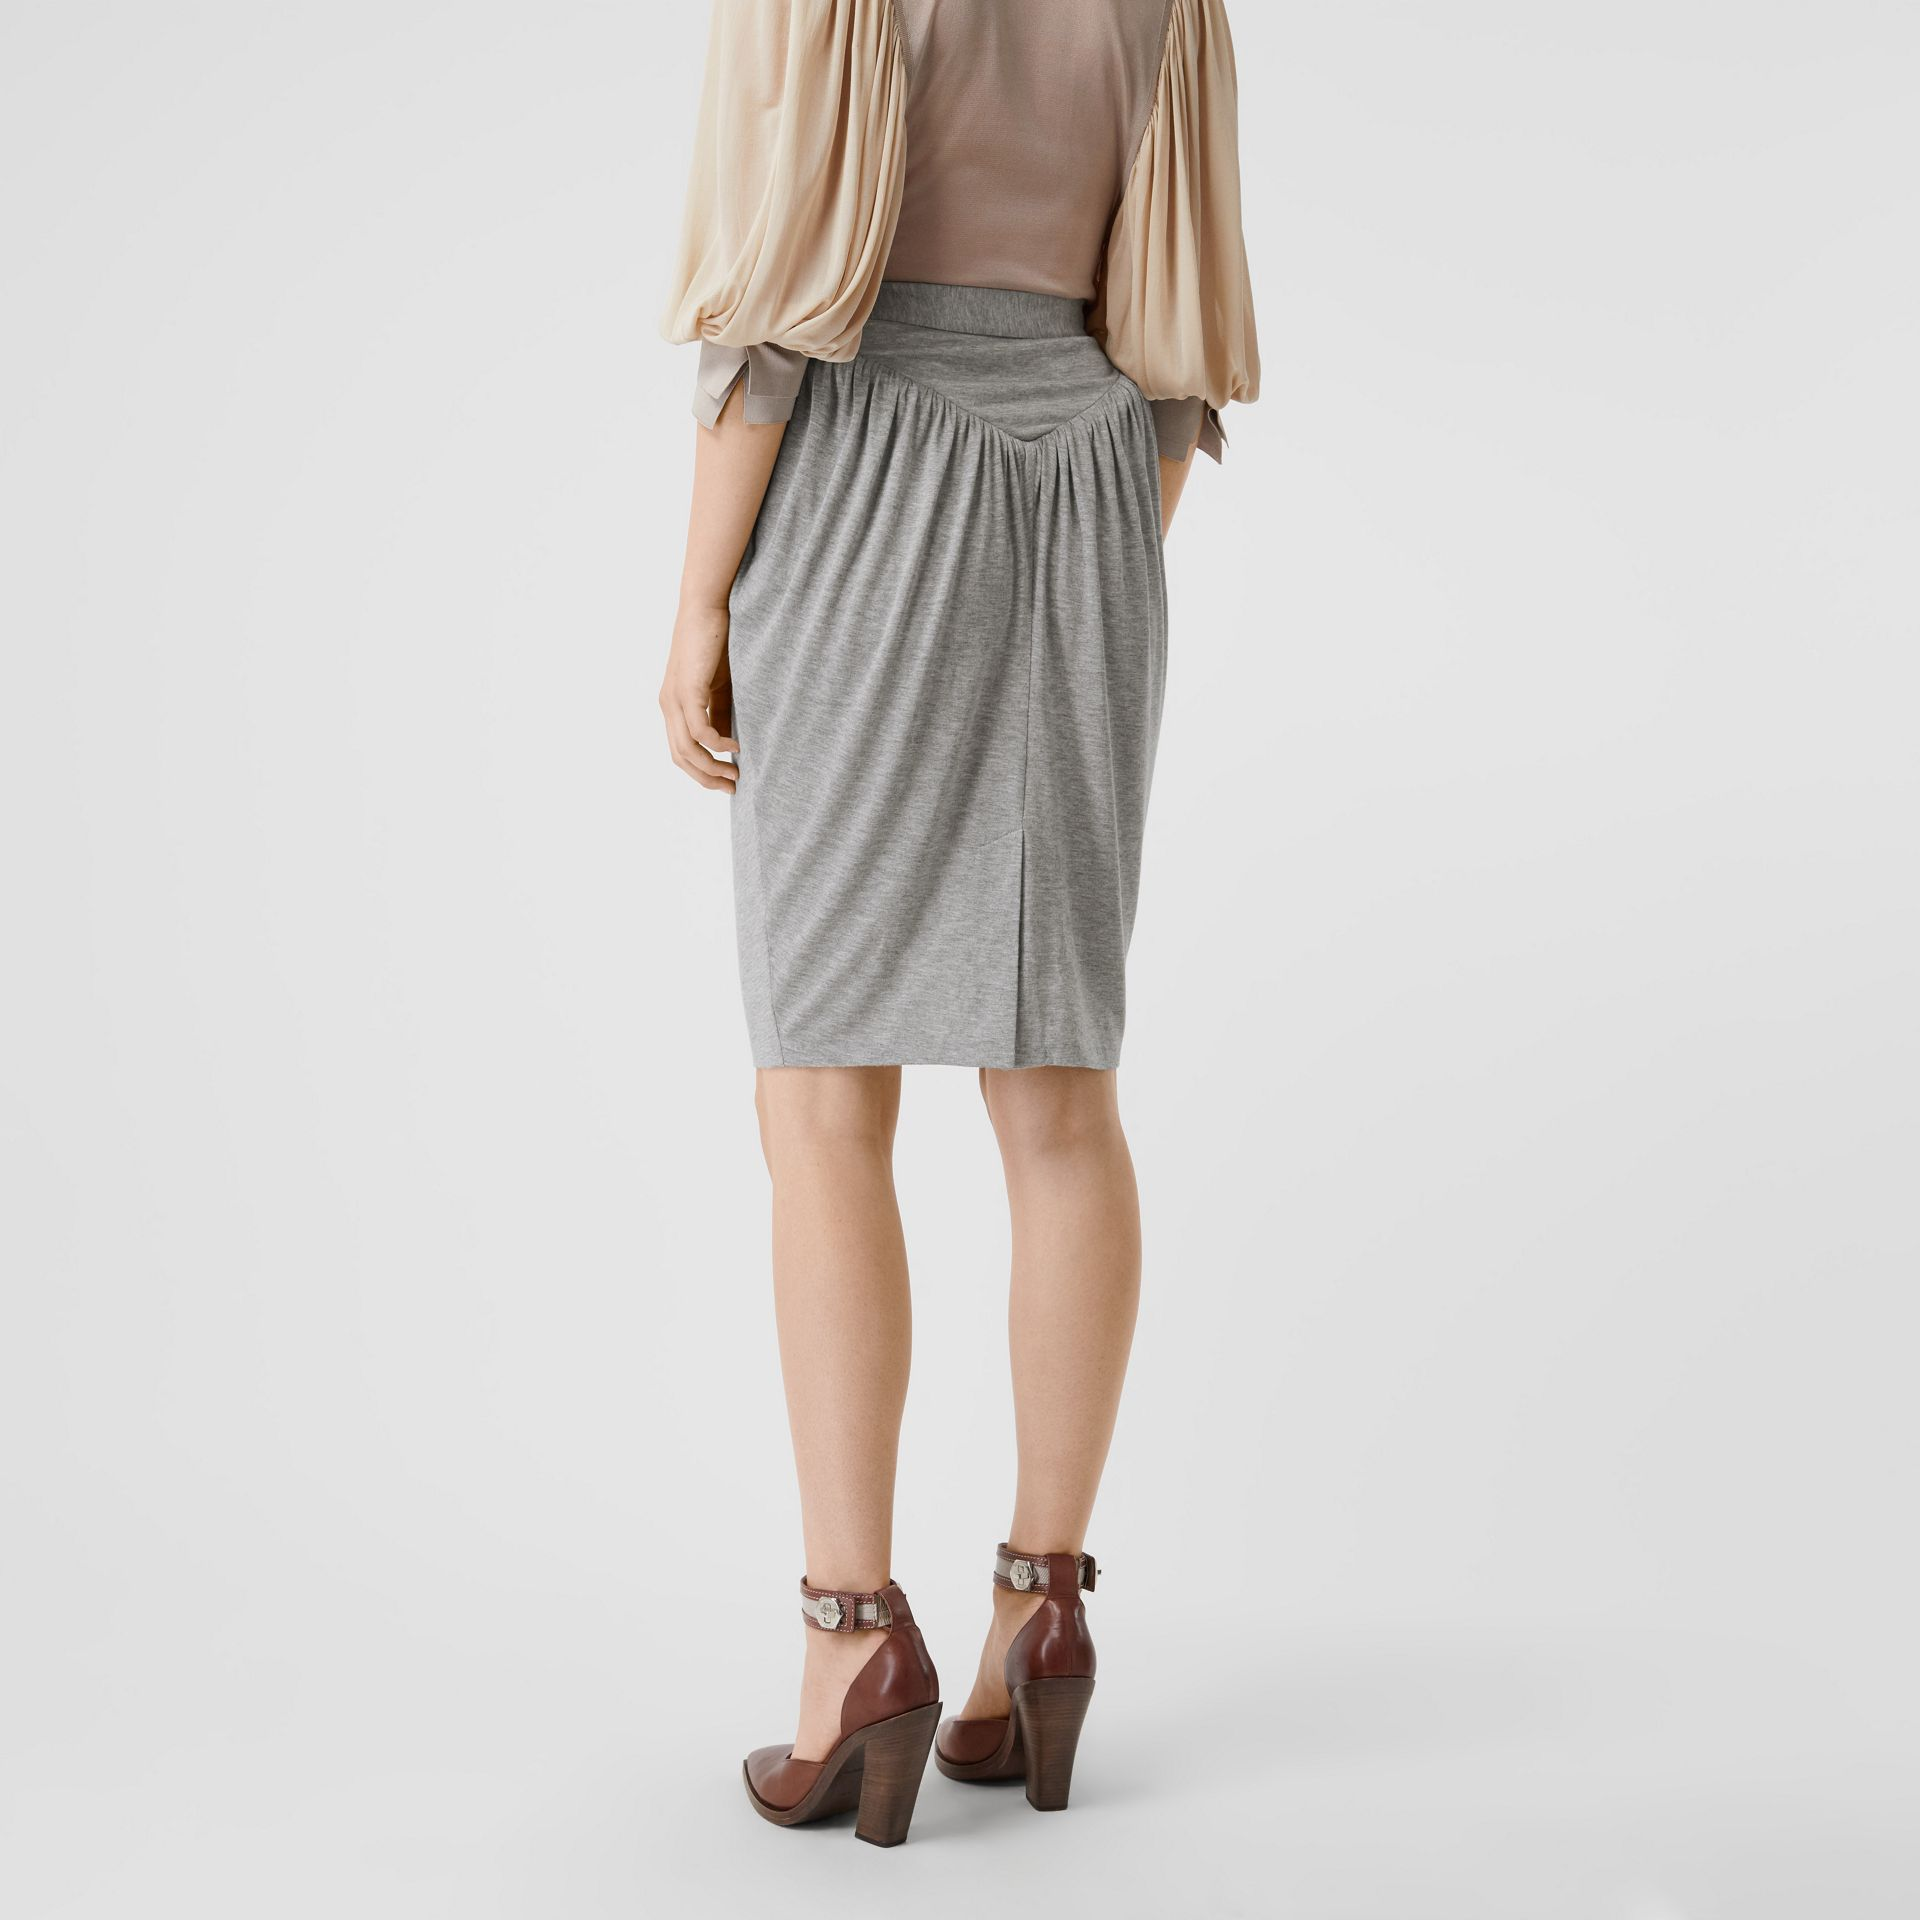 Gathered Jersey Sculptural Skirt in Pewter Melange - Women | Burberry United States - gallery image 2